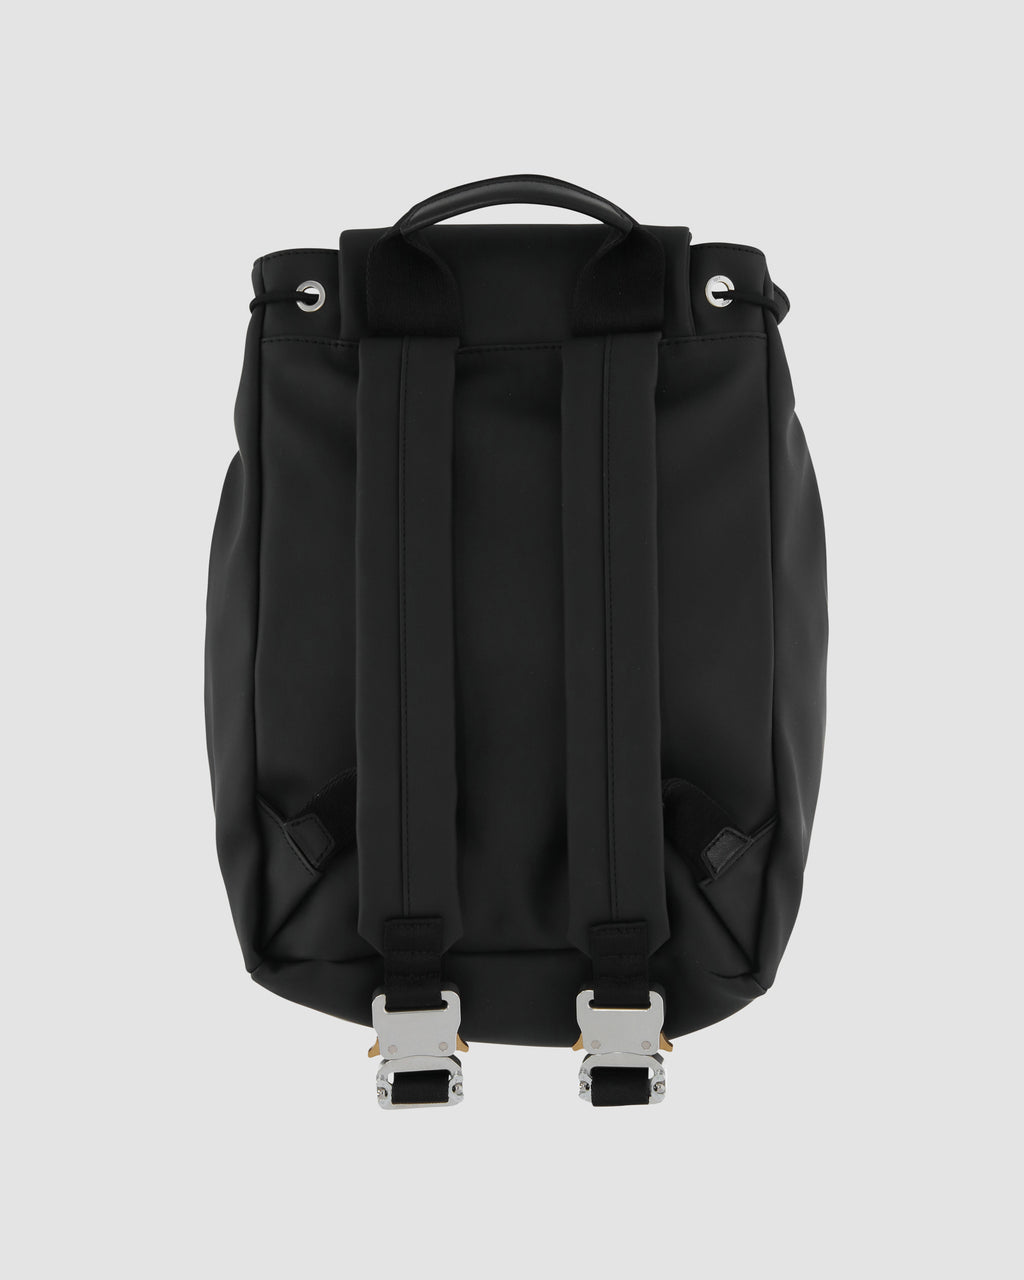 1017 ALYX 9SM | TANK BACKPACK | Backpack | Accessories, Backpack, Black, F19, Man, Woman